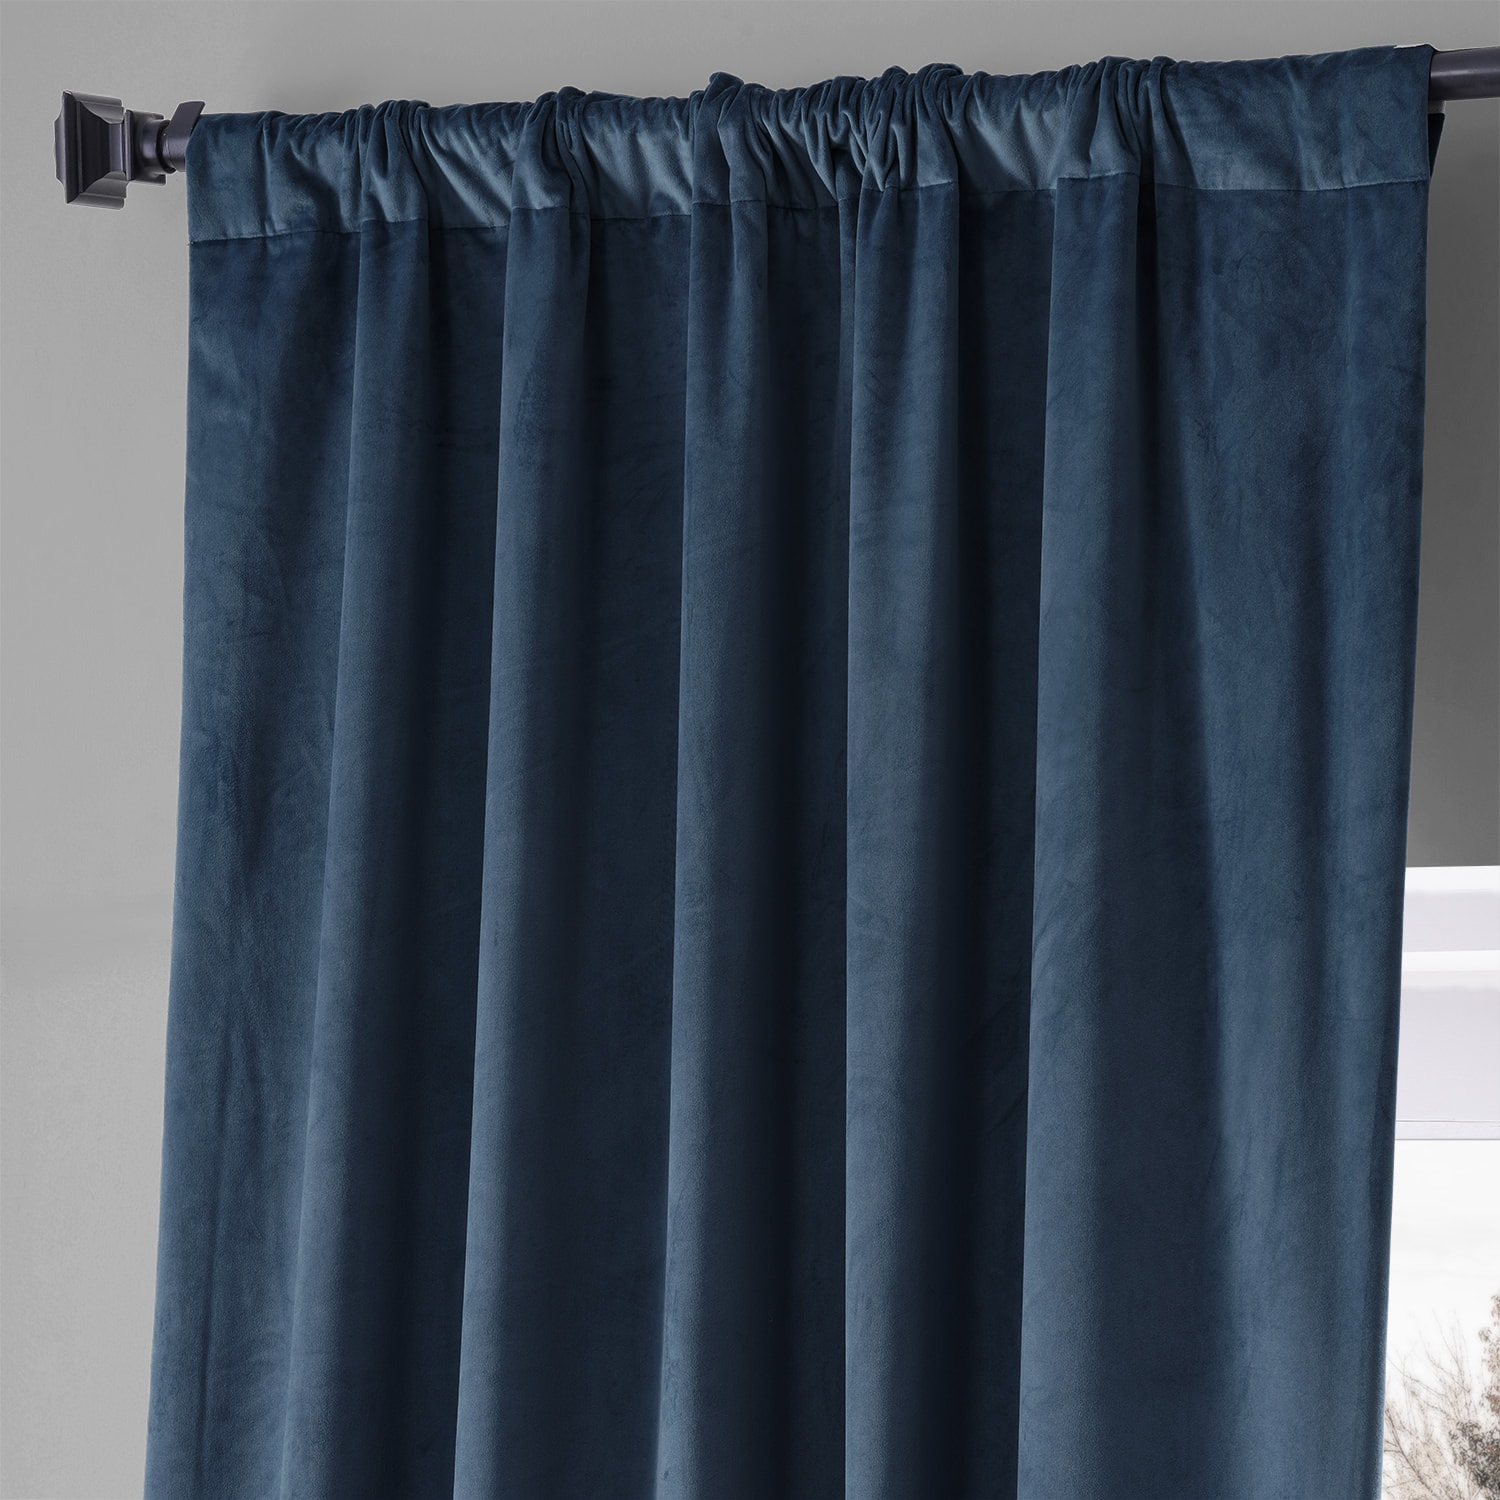 Signature Varsity Blue Plush Velvet Hotel Blackout Curtain